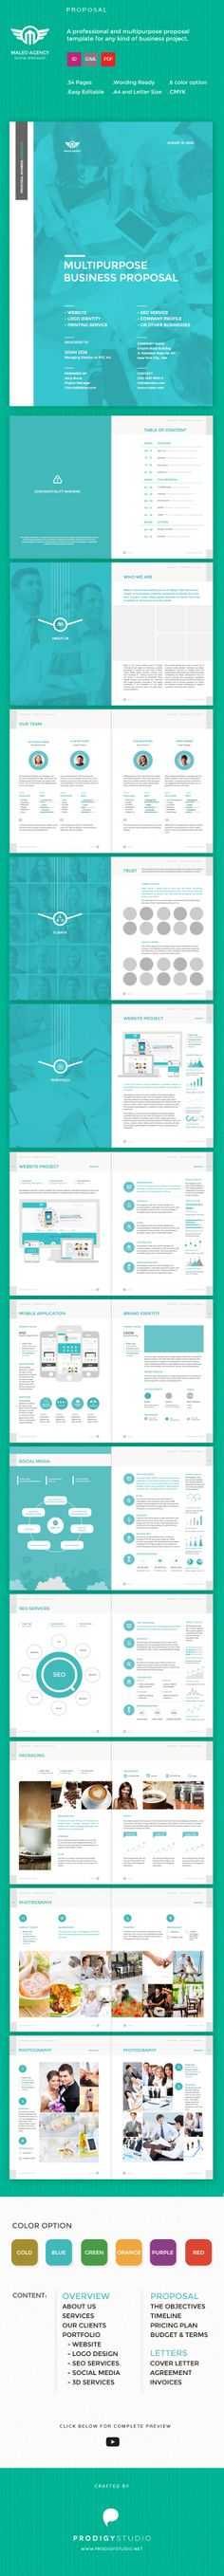 Proposal Template Proposal templates, Brochures and Invoice layout - best proposal templates